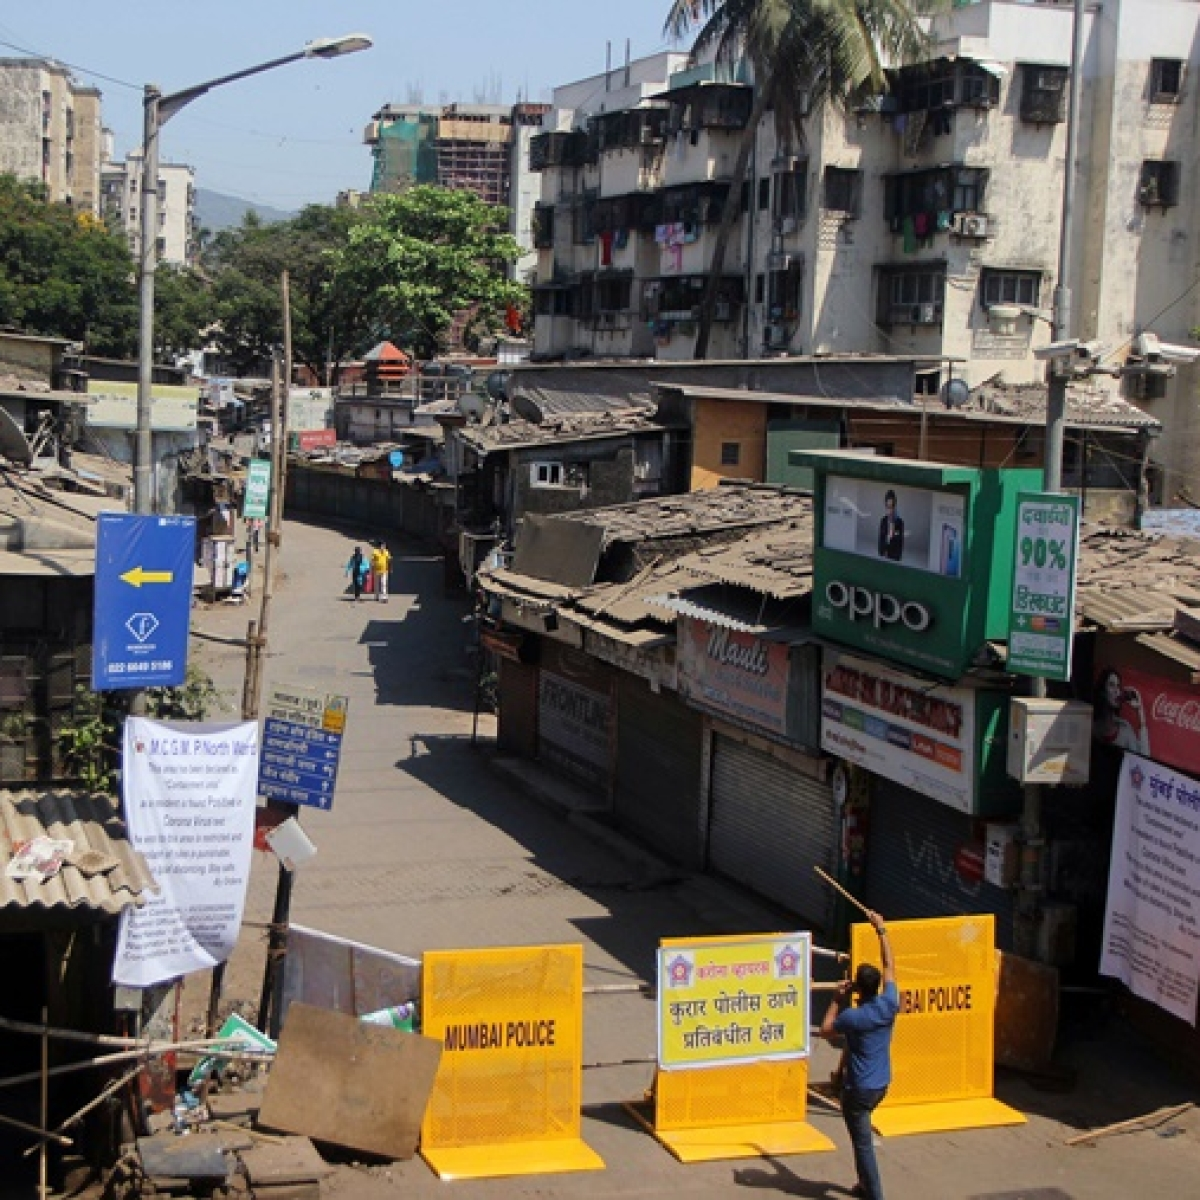 Coronavirus in Mumbai: Full list of COVID-19 containment zones from Colaba in SoBo to Borivali in West and Mulund in East issued by BMC as of May 31